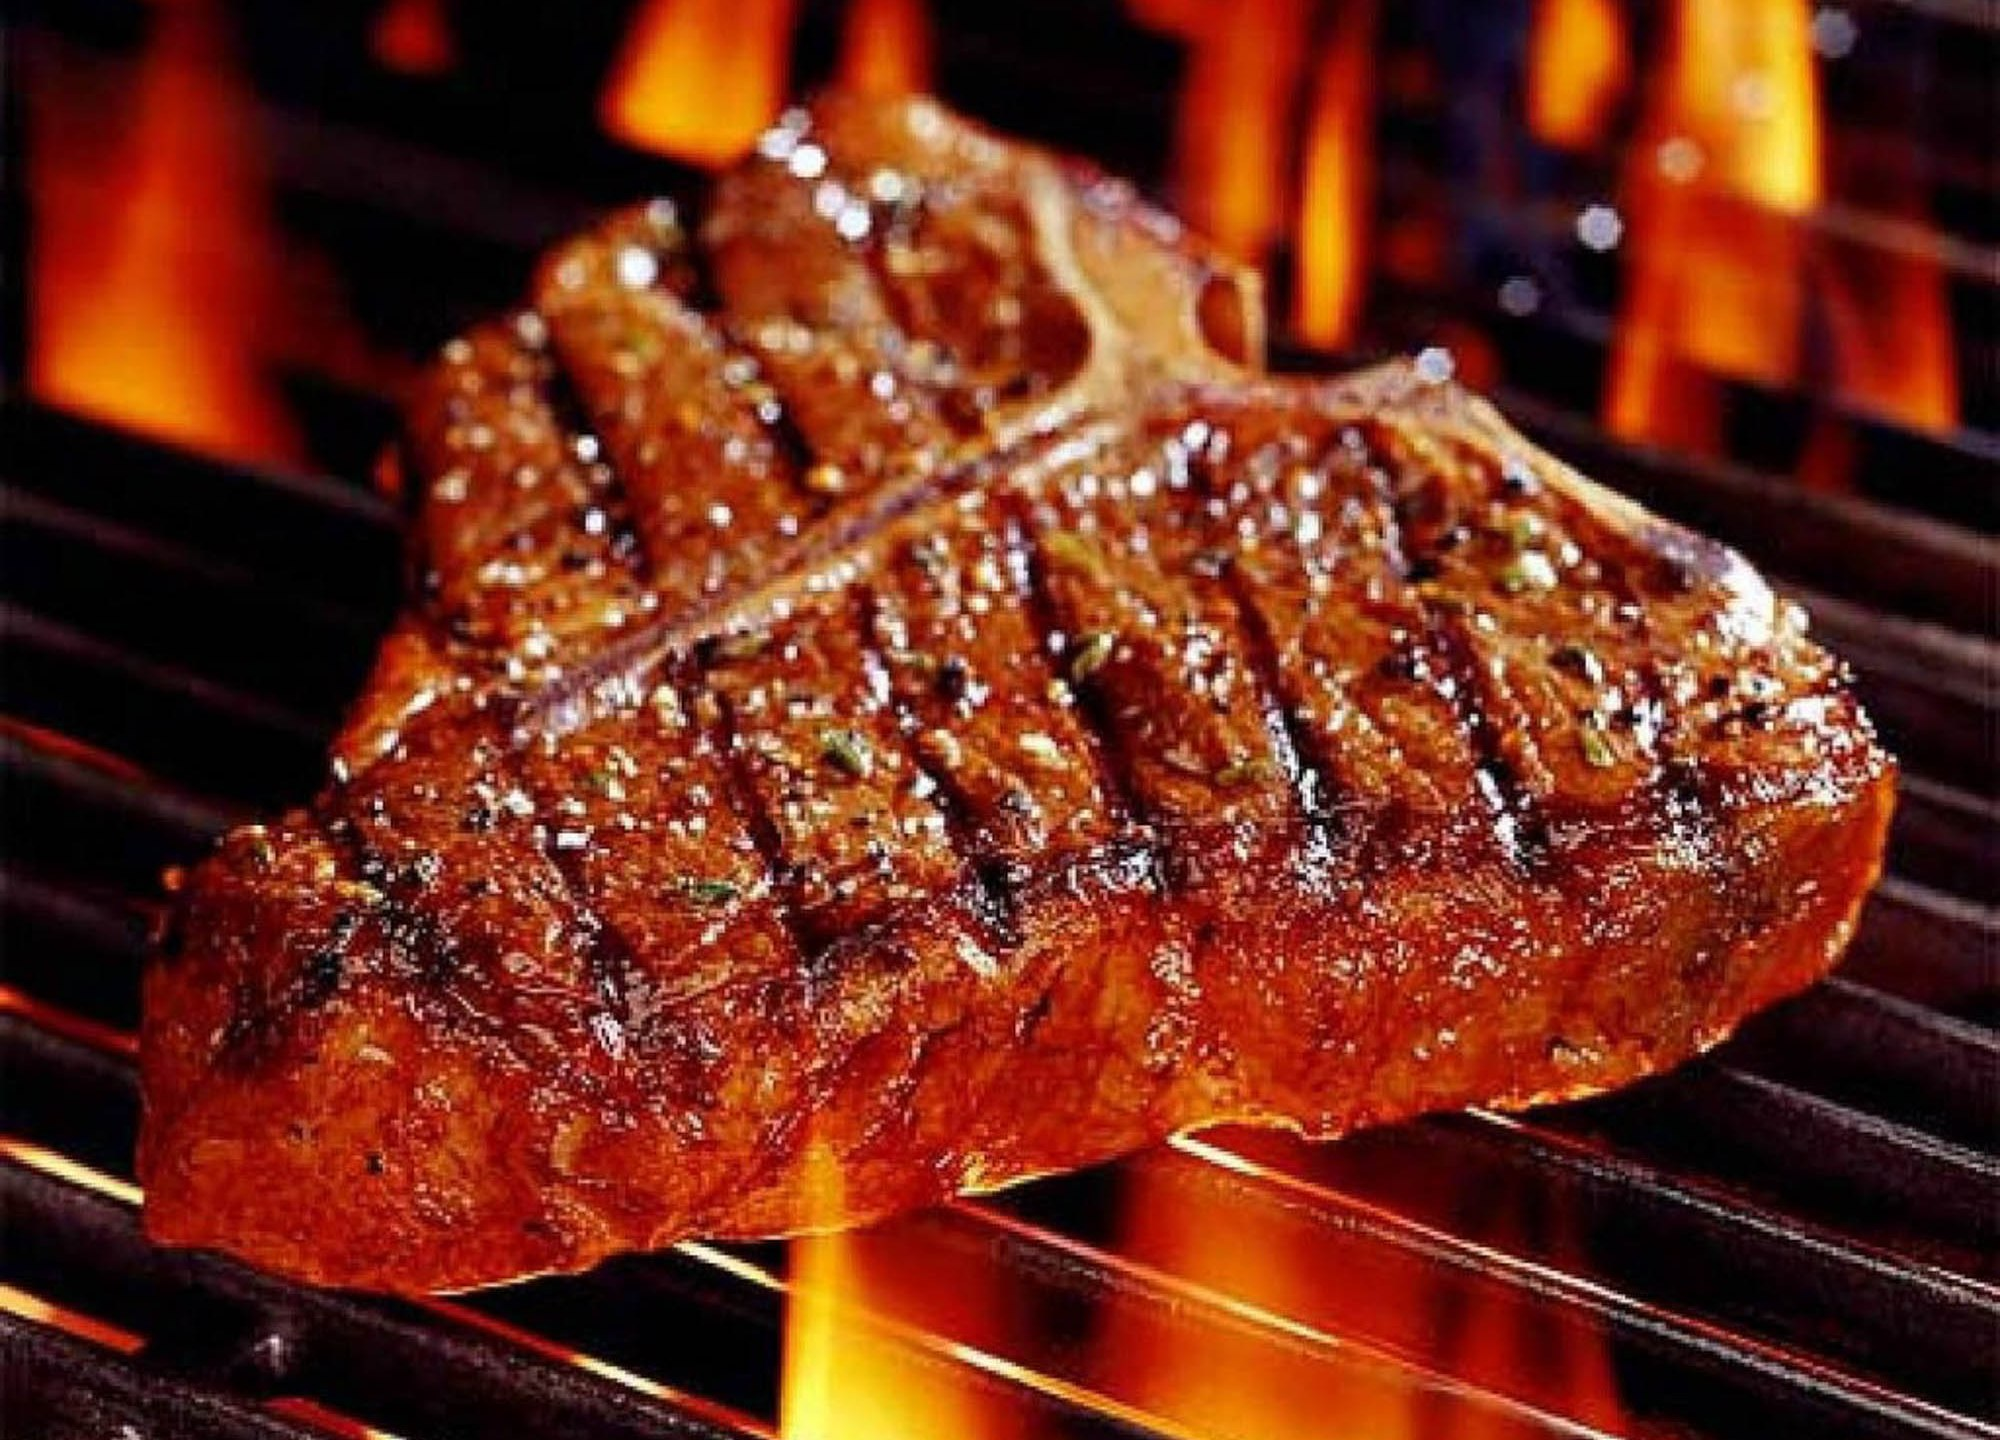 T-Bone-Steak-with-Great-Grill-Marks_1560119453186.jpg